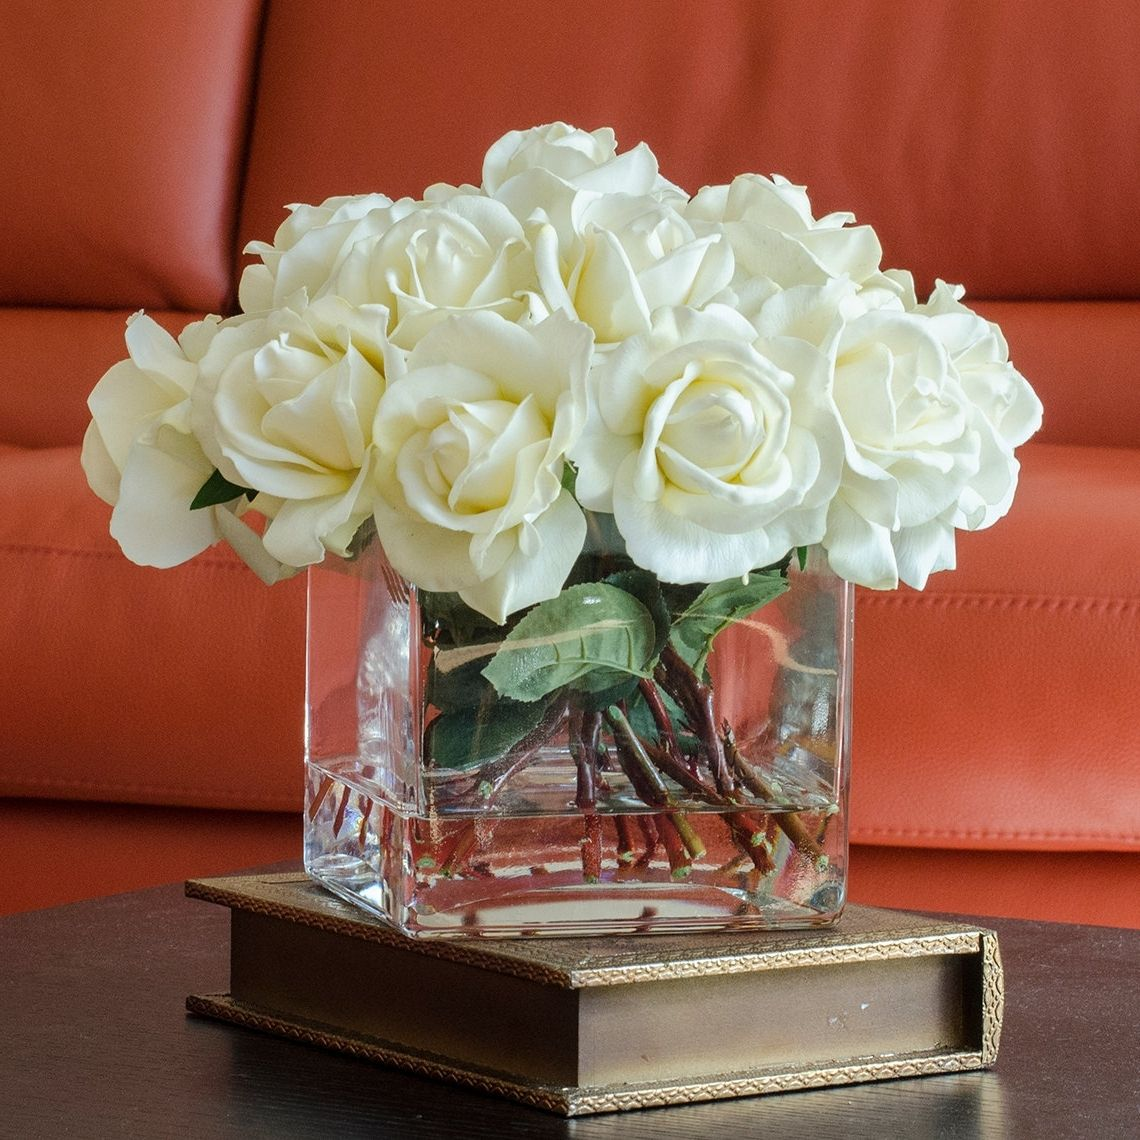 Artificial Flowers In Vase With Fake Water Uk Rose